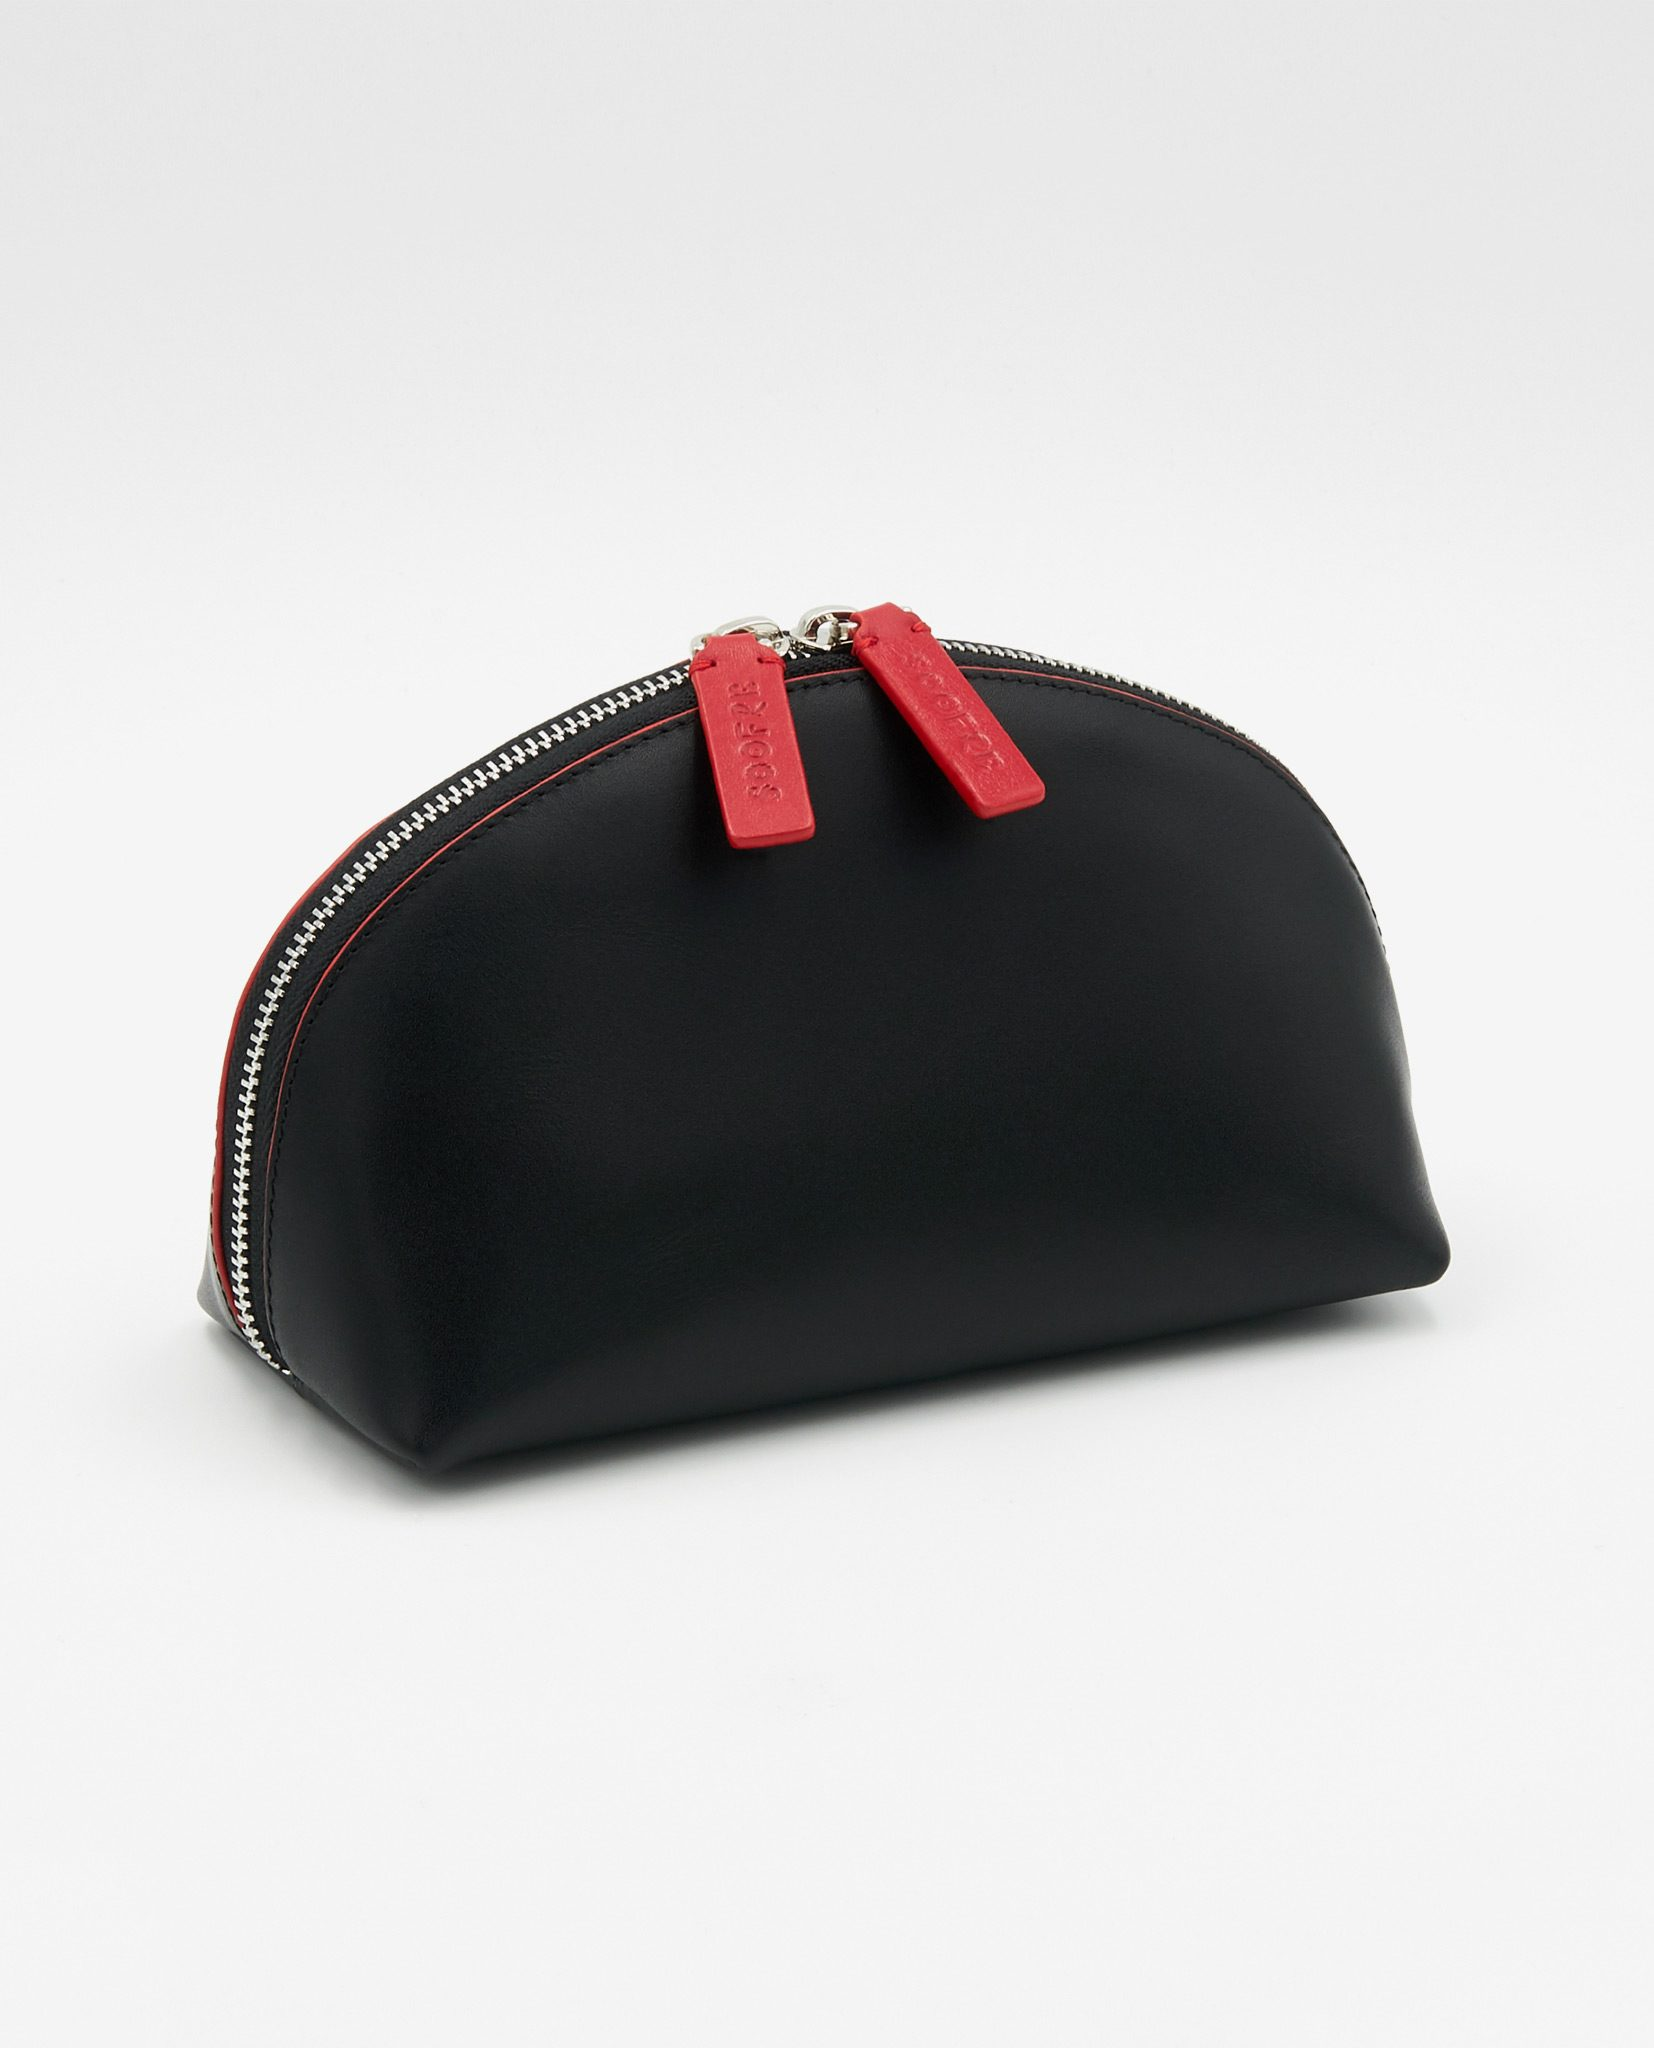 Soofre Smooth Leather Cosmetic Bag Black Red